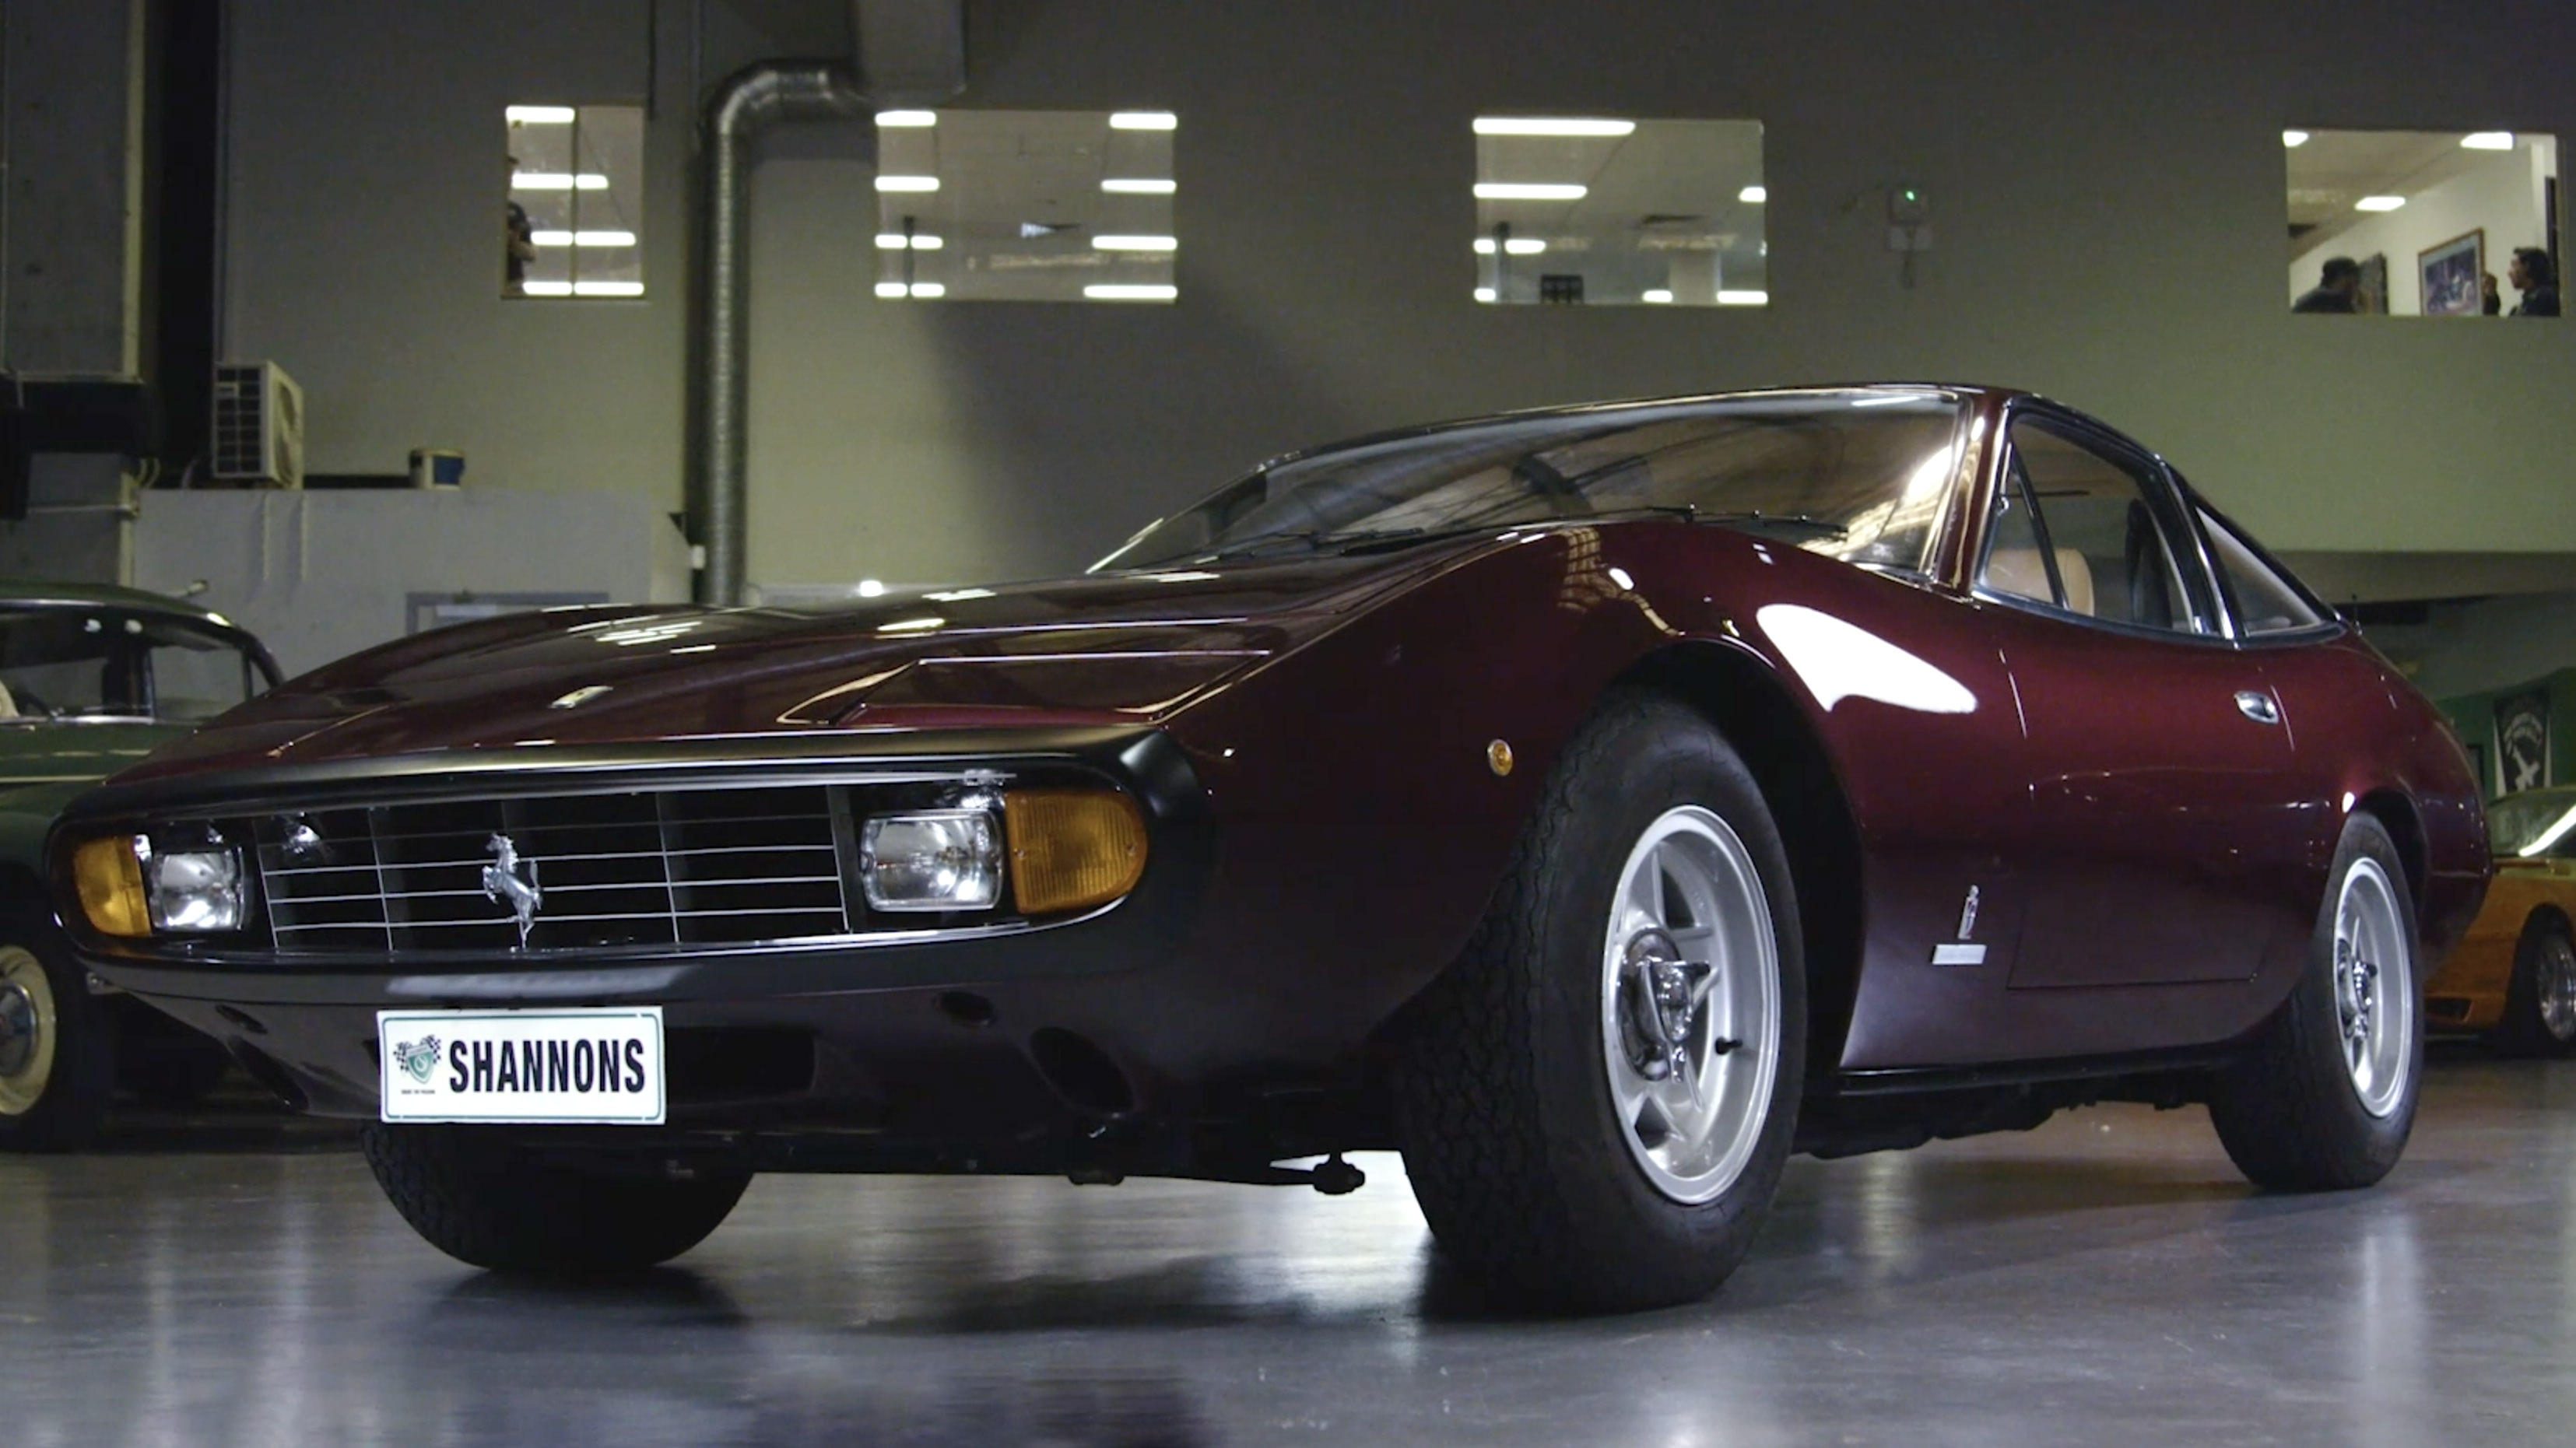 1971 Ferrari 365 GTC/4 Coupe - 2020 Shannons Spring Timed Online Auction